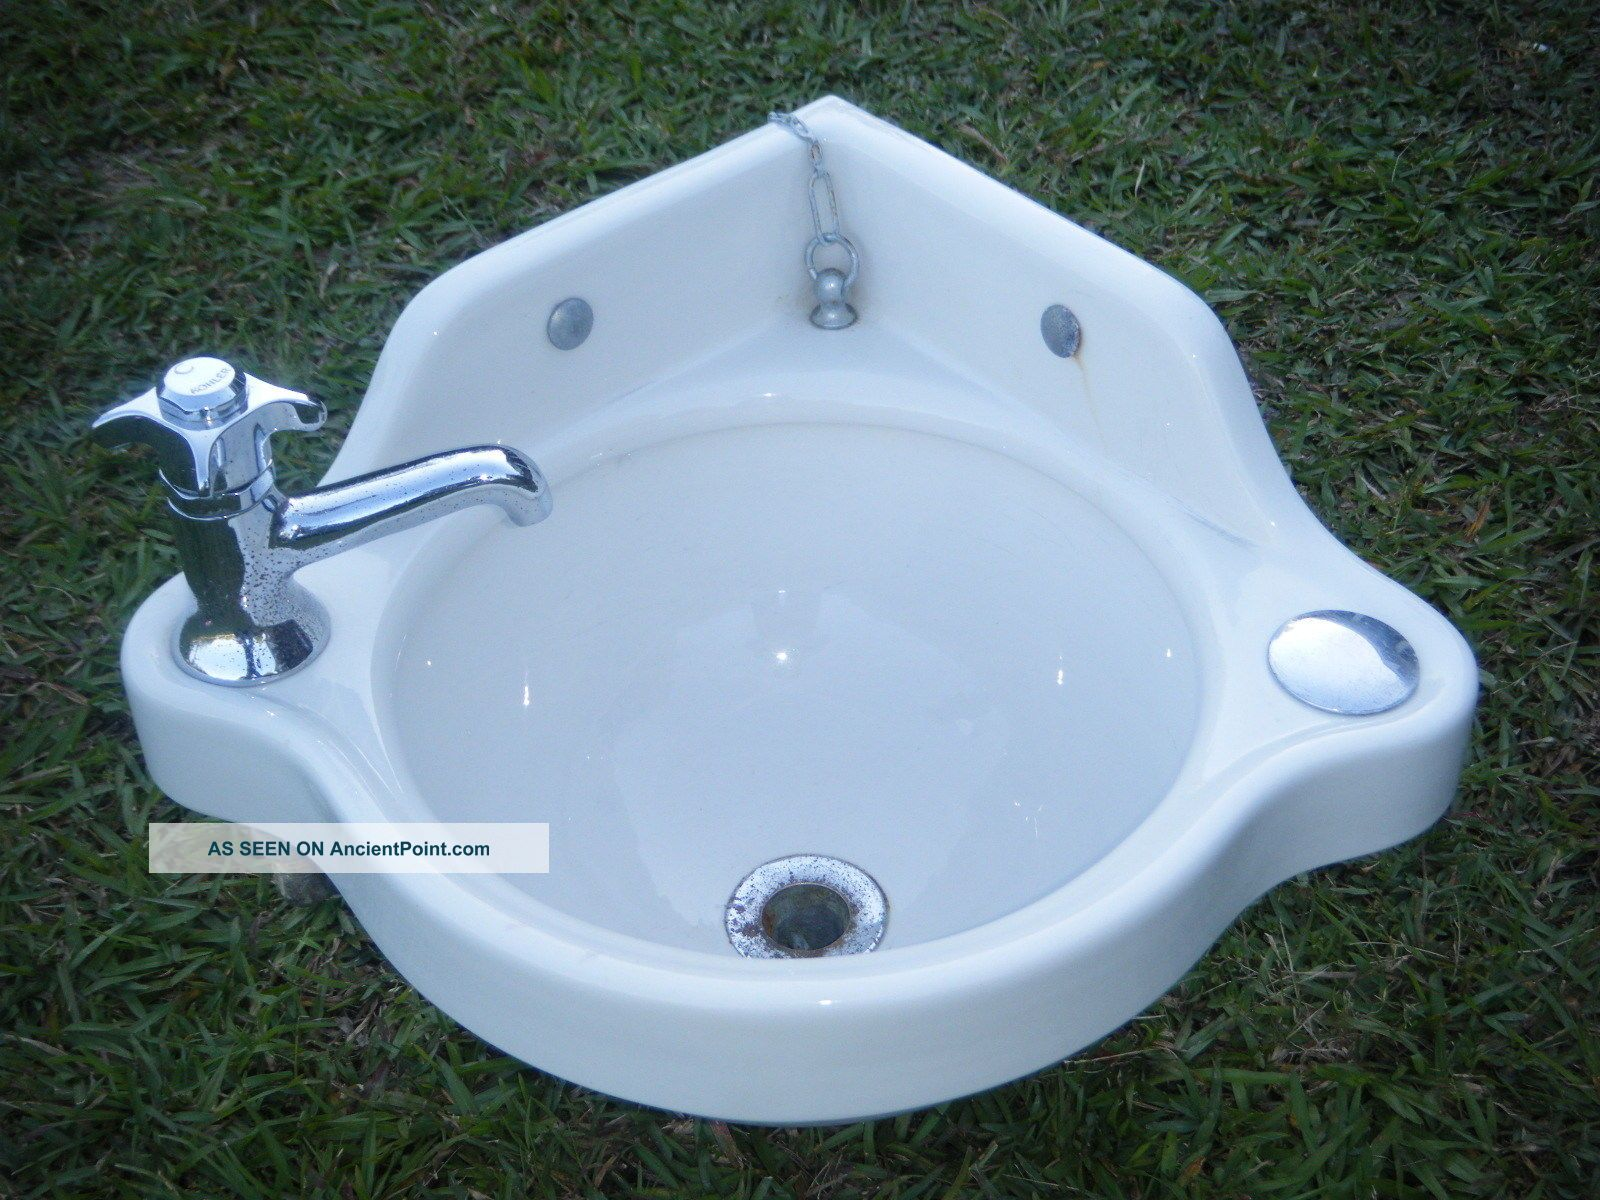 Vtg 1950s Small White Porcelain Boat Ship Corner Lavatory Sink Maritime Salvage Other Maritime Antiques photo